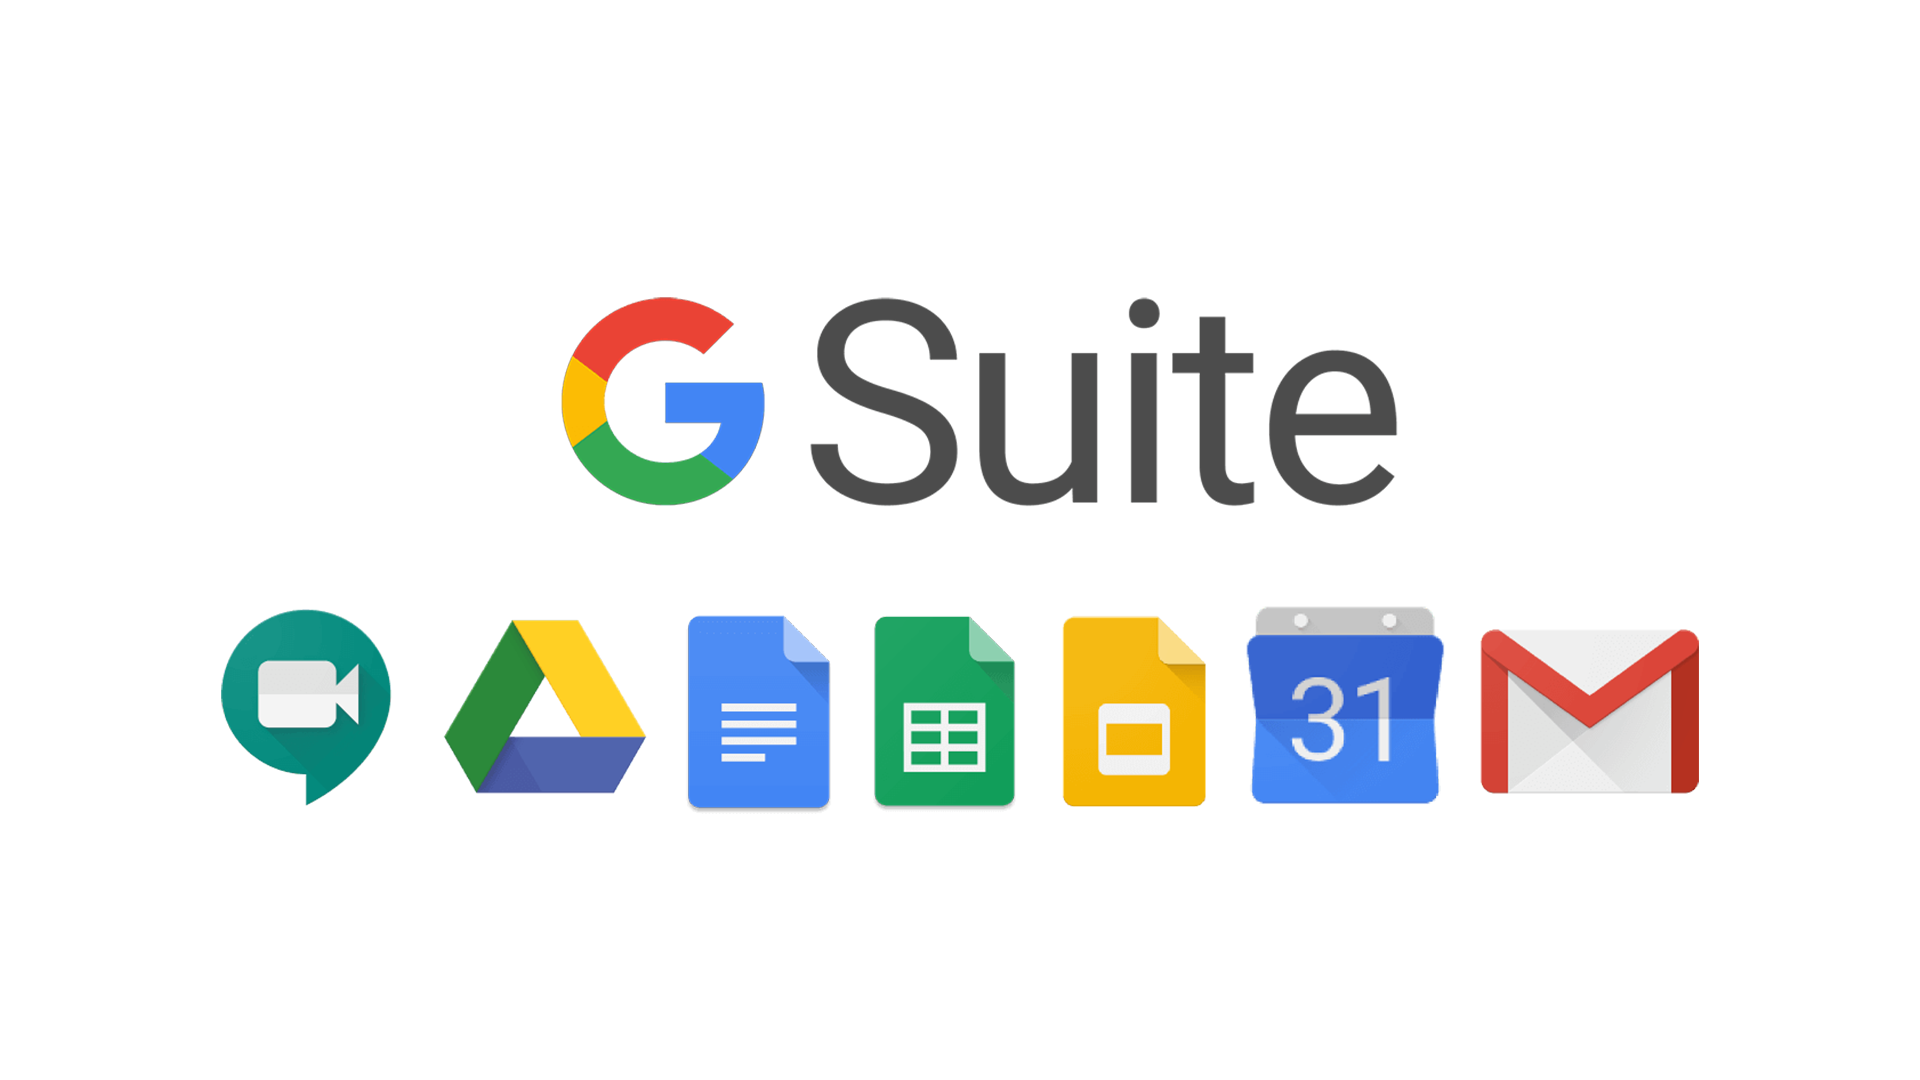 G Suite for your company